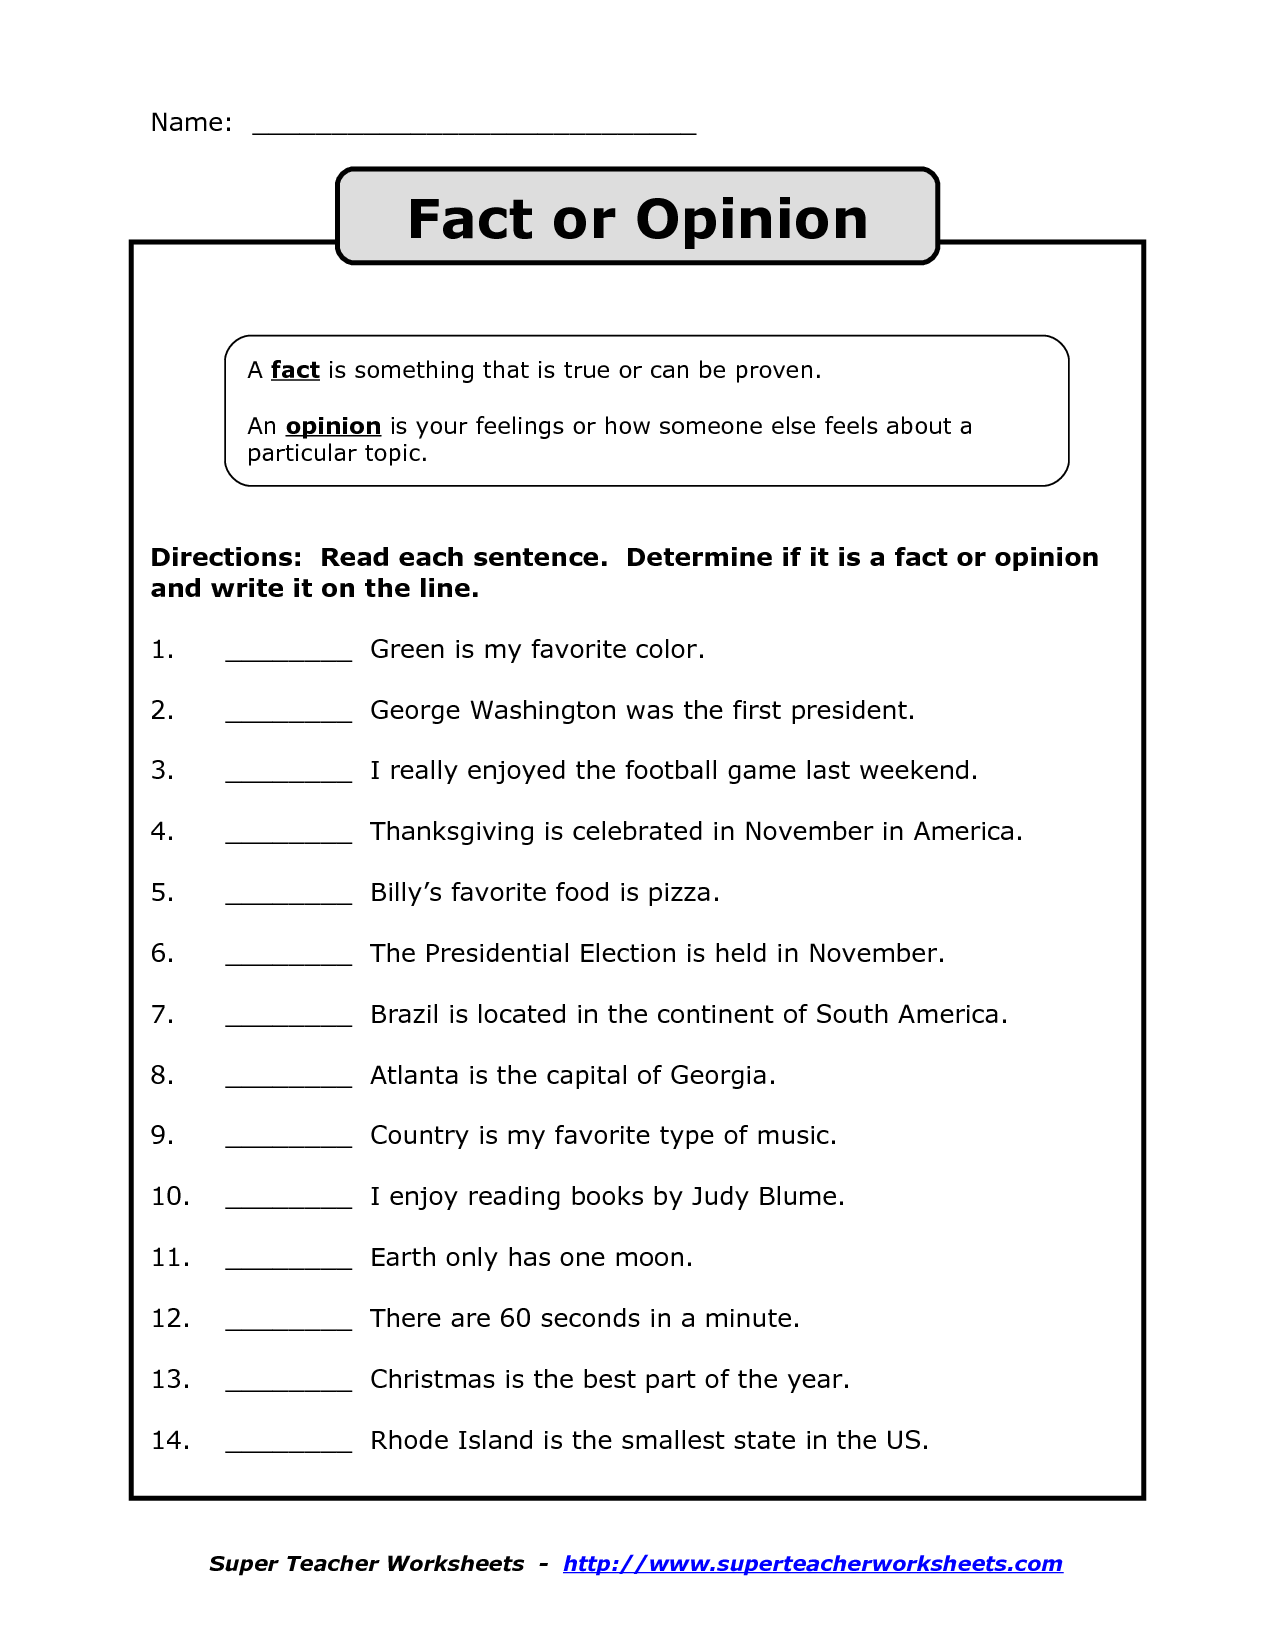 hight resolution of fact vs opinion worksheet - Google Search   Fact and opinion worksheet